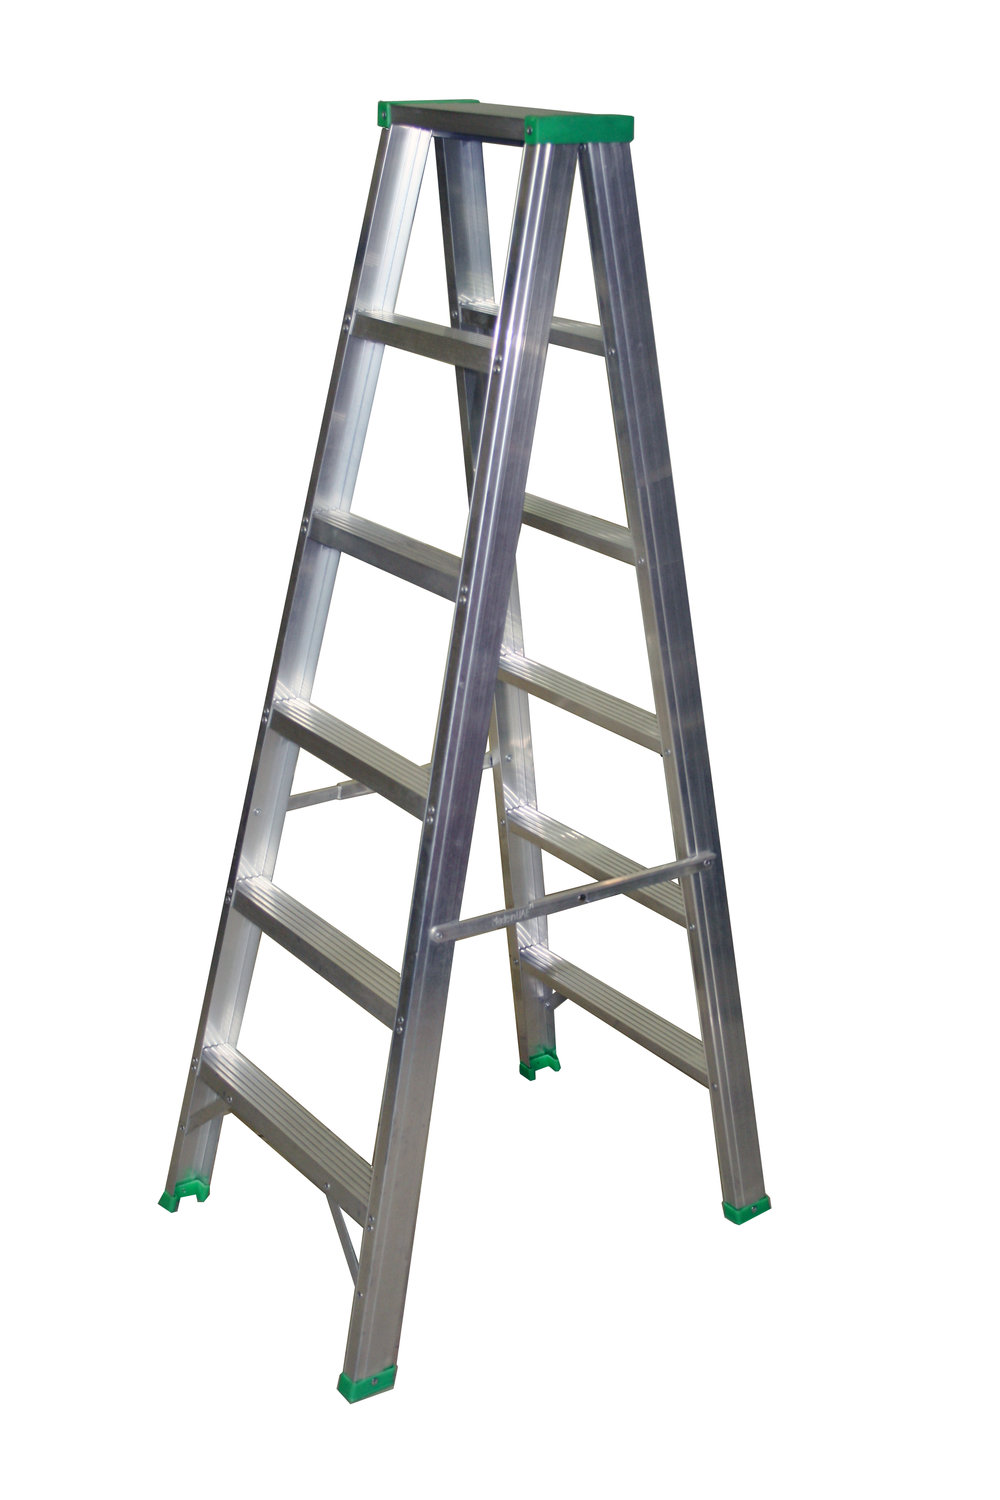 Full-Double Sided Ladder.jpg